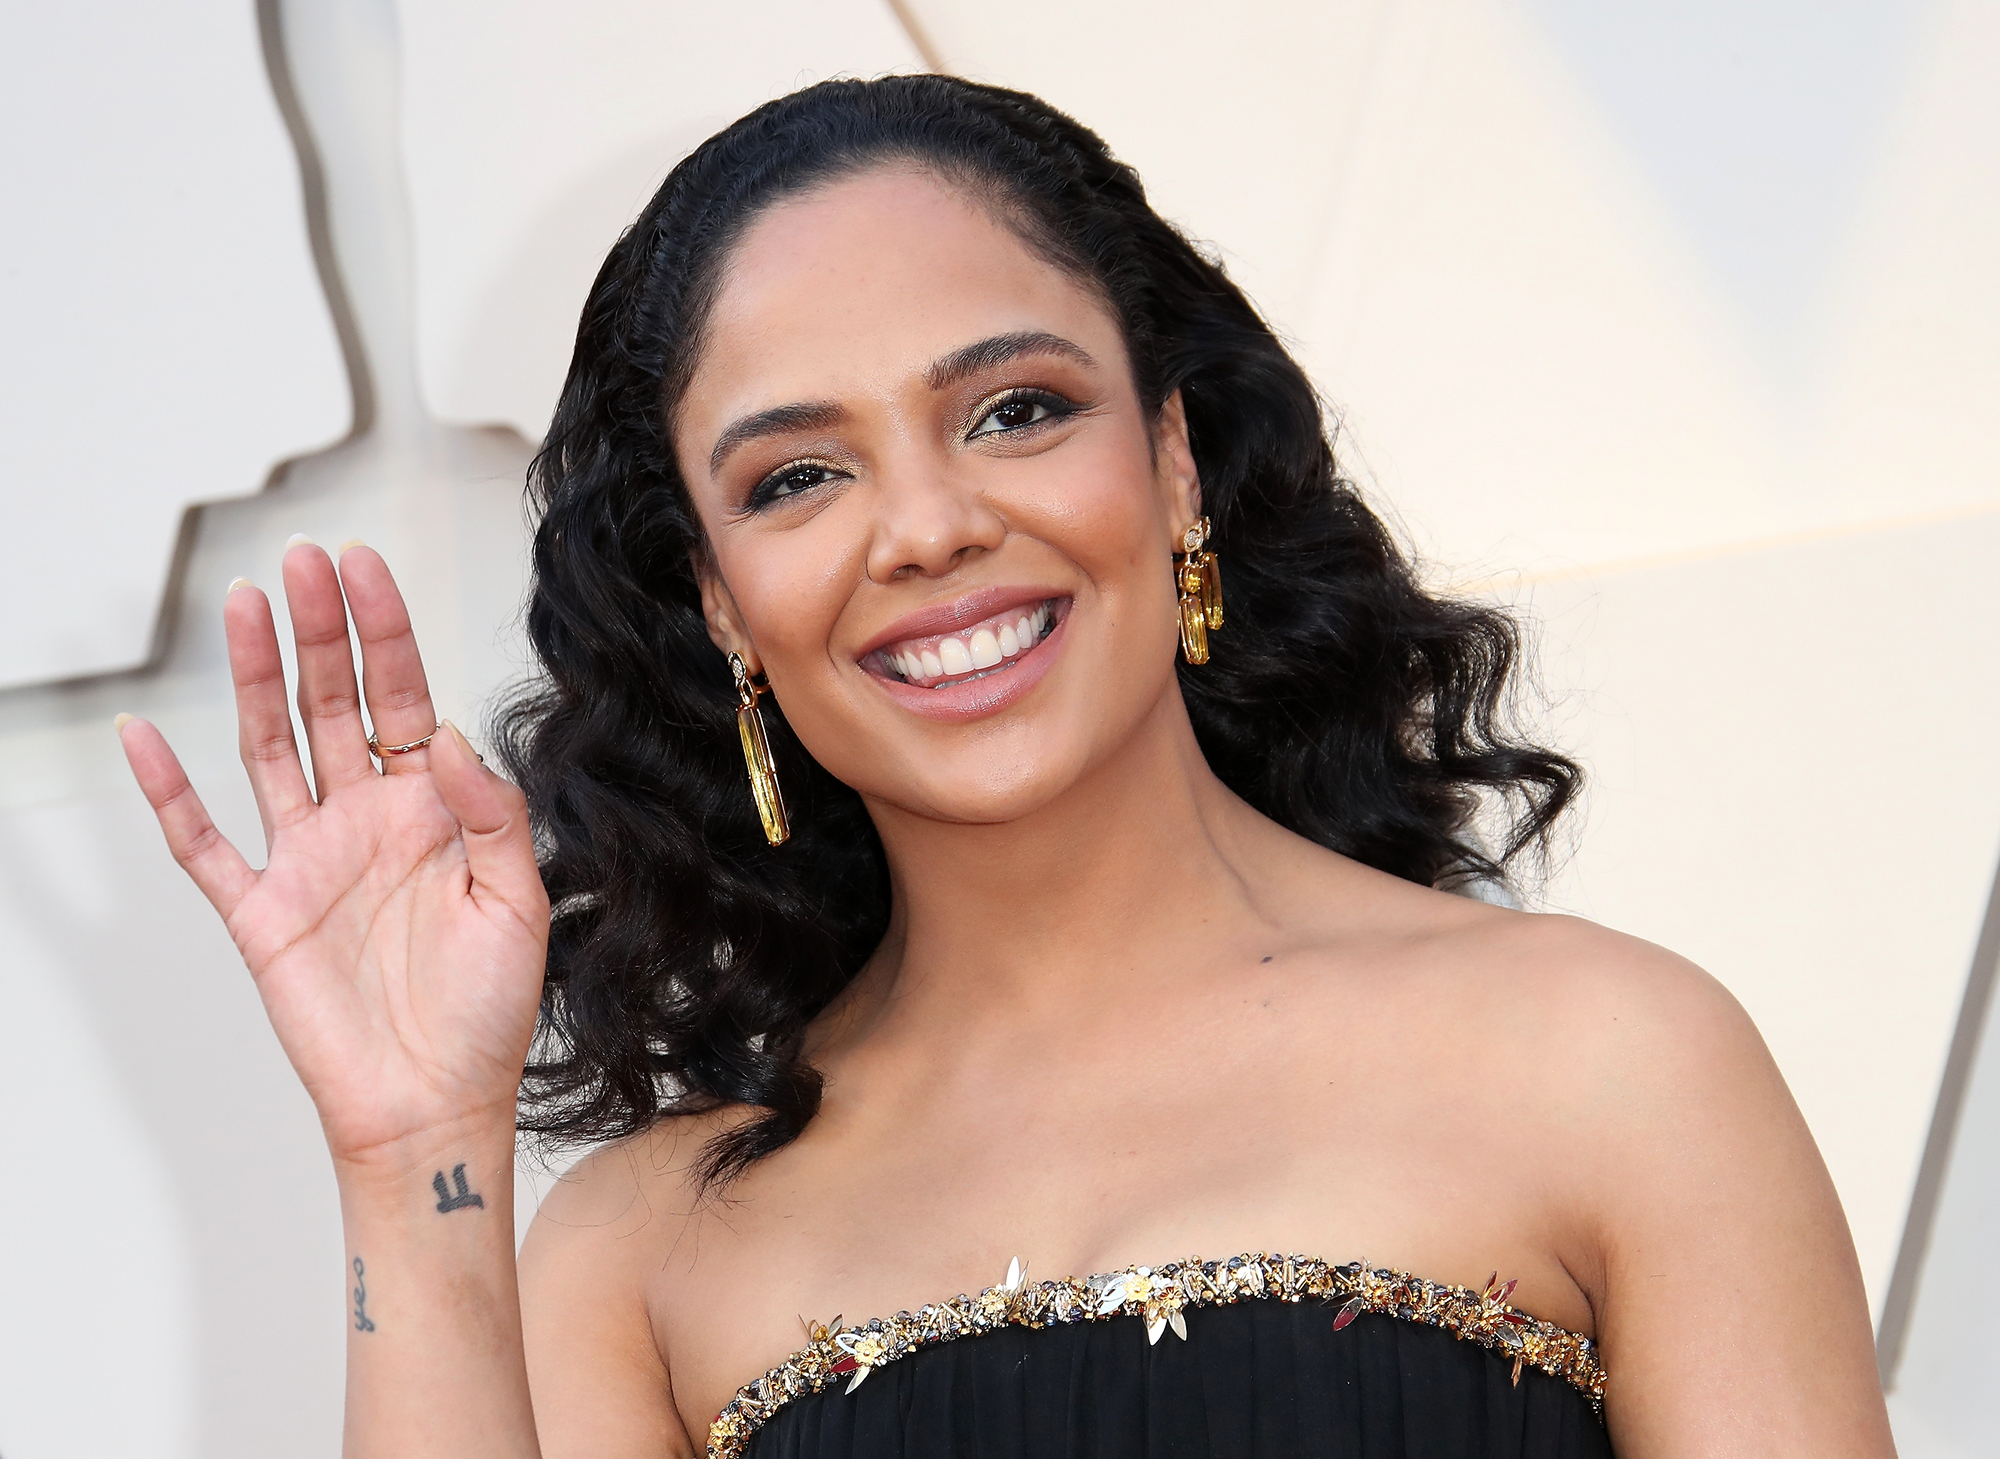 Tessa-Thompson-lipstick-oscars - Tessa Thompson attends the 91st Annual Academy Awards at Hollywood and Highland on February 24, 2019 in Hollywood, California.